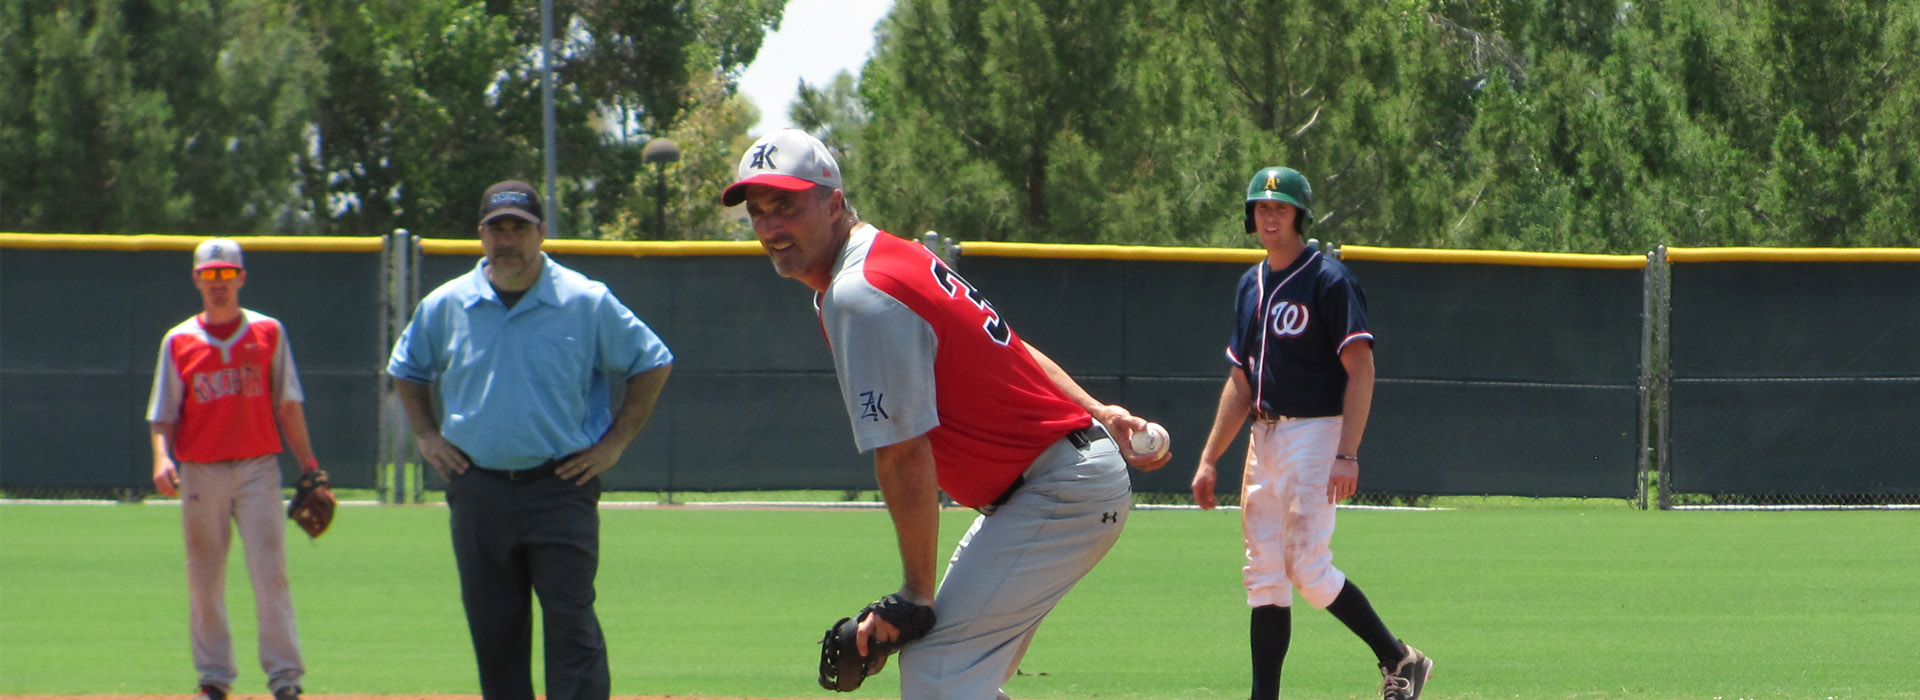 Arizona Men's Senior Baseball League - AZMSBL - Homepage11